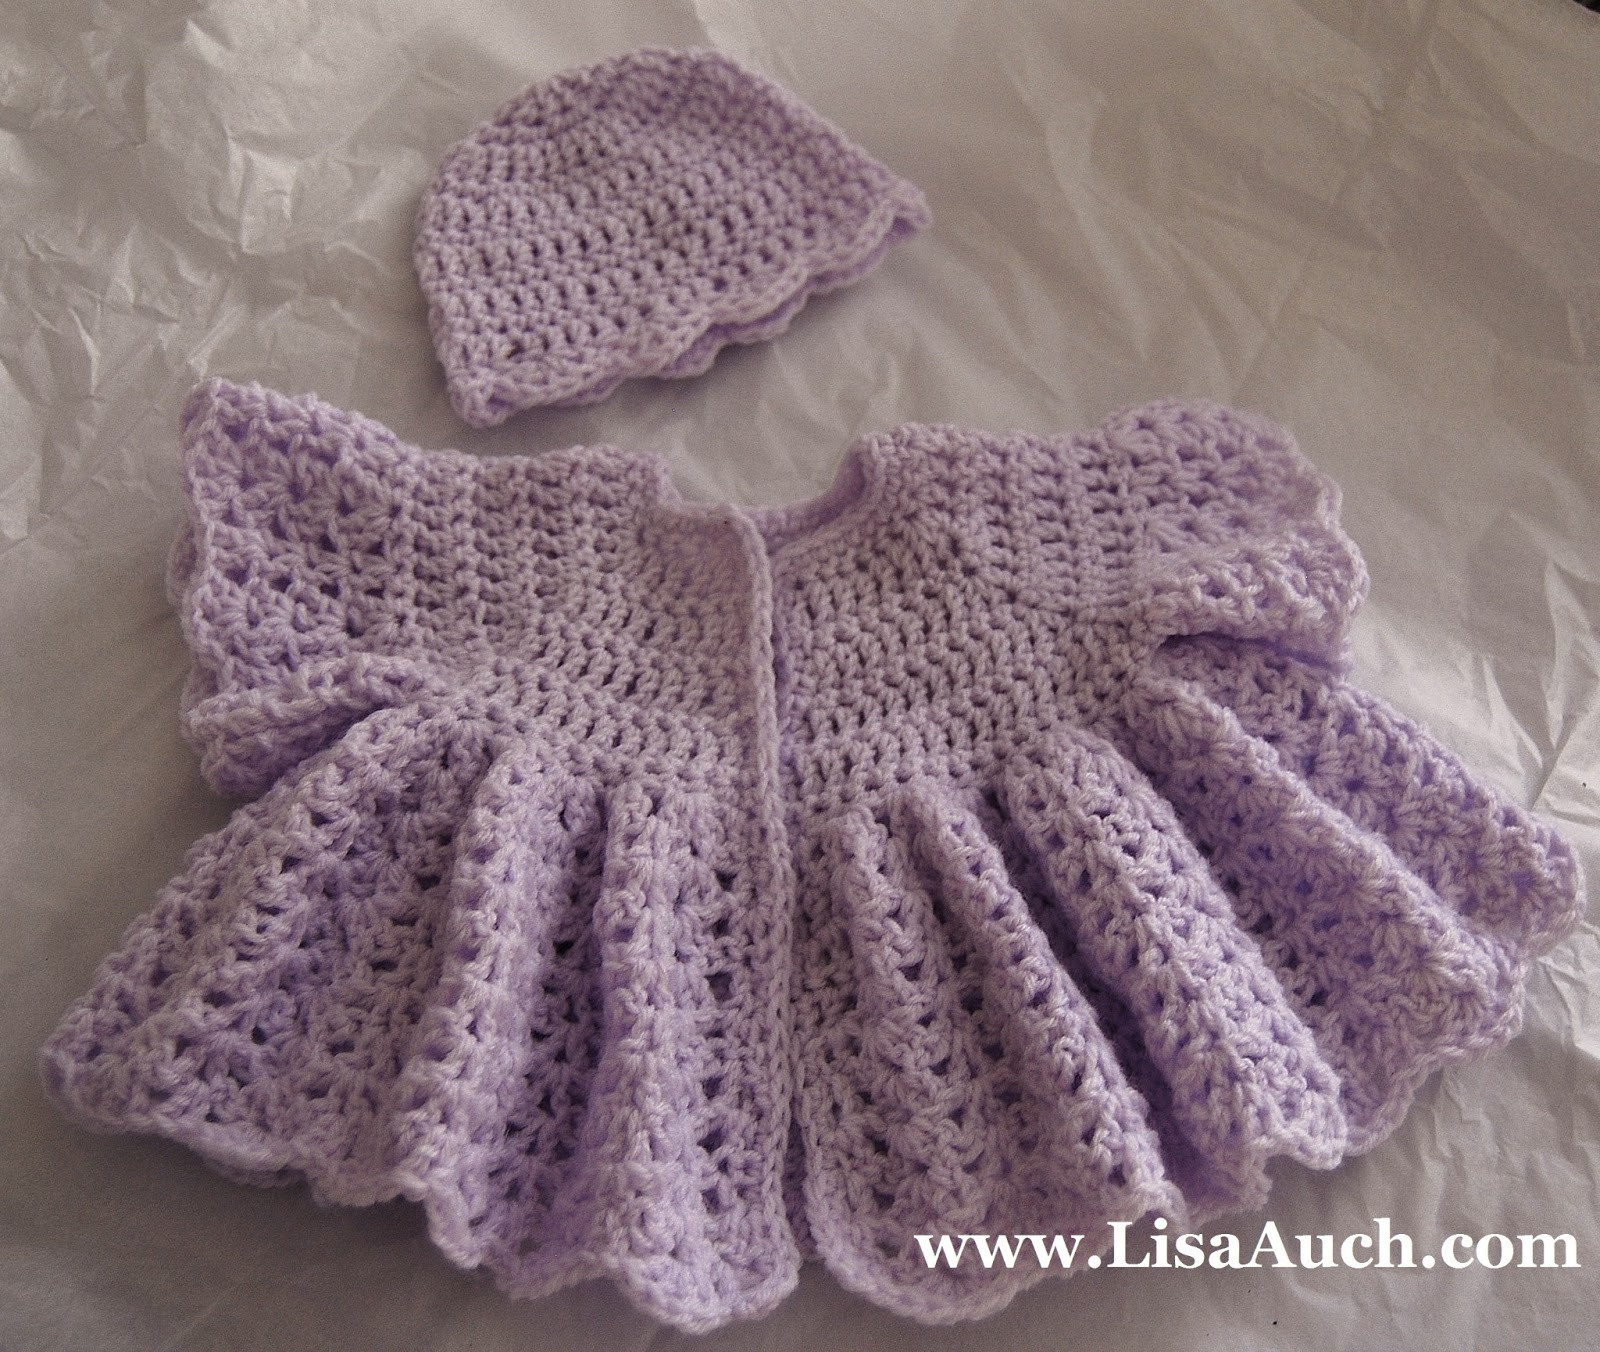 Crochet Baby Cardigan Pattern Inspirational Easy Baby Crochet Cardigan Sweater Patterns Newborn 3 Of Luxury 44 Pictures Crochet Baby Cardigan Pattern